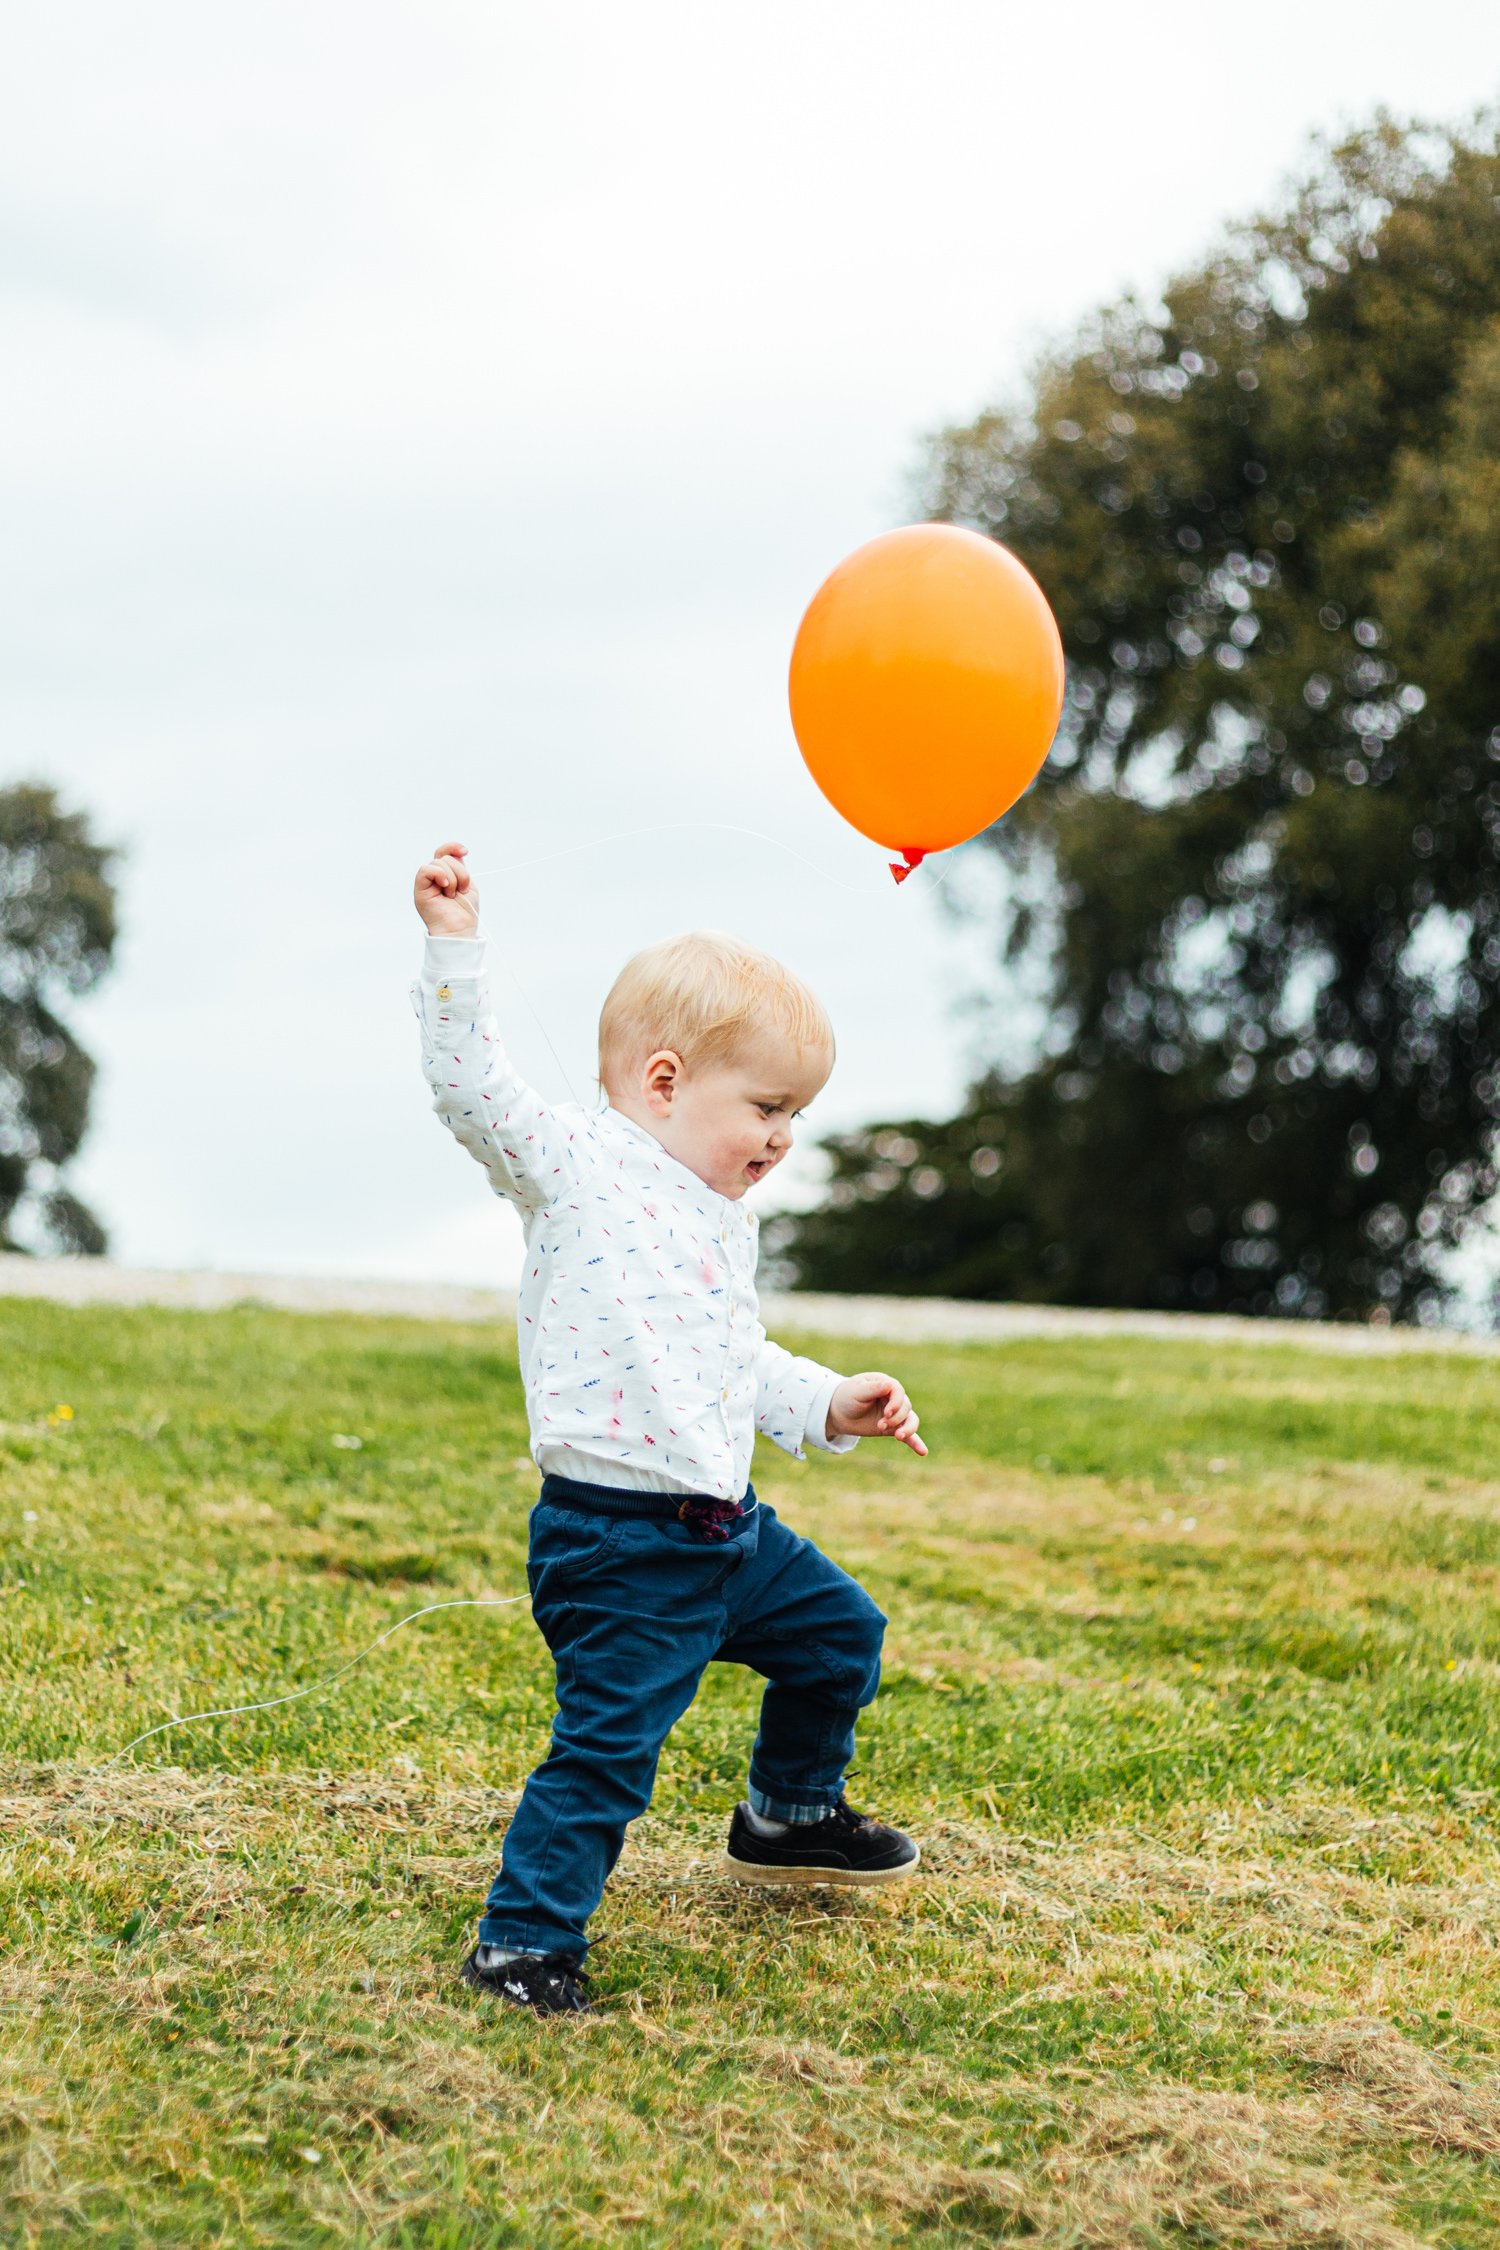 balloon, child with balloon, portrait, child playing, outdoor wedding, sharpham house, sharpham gardens, sharpham gardens wedding photography, wedding photography, wedding guests, toddlers, spring wedding, devon wedding, rolling hills